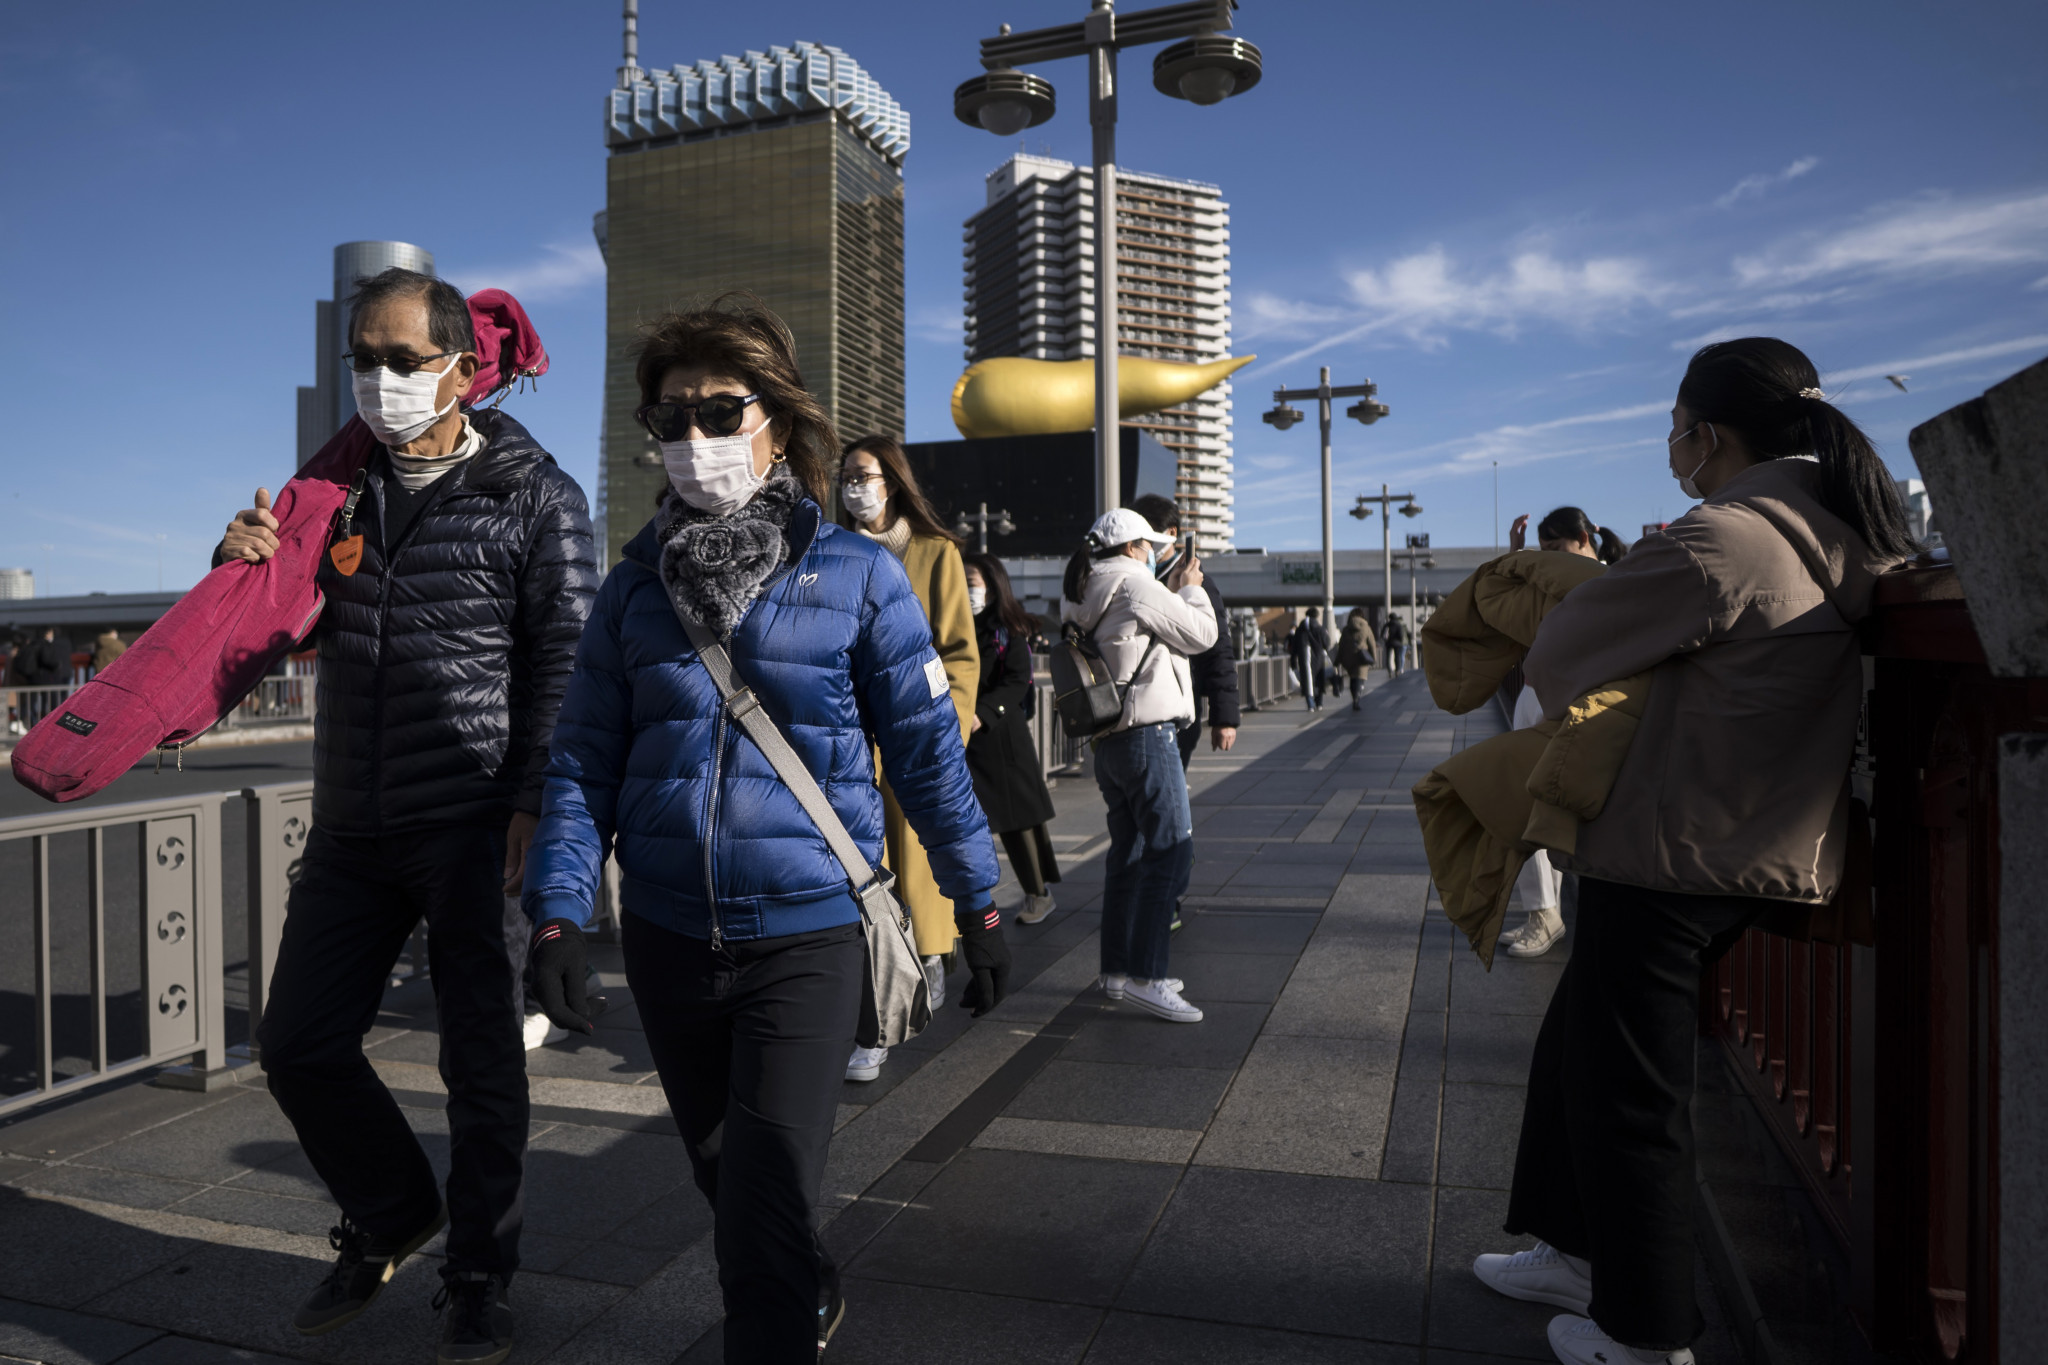 Surgical masks will be distributed to runners and volunteers, upon request, at next month's Tokyo Marathon as part of preventive safety measures against coronavirus ©Getty Images